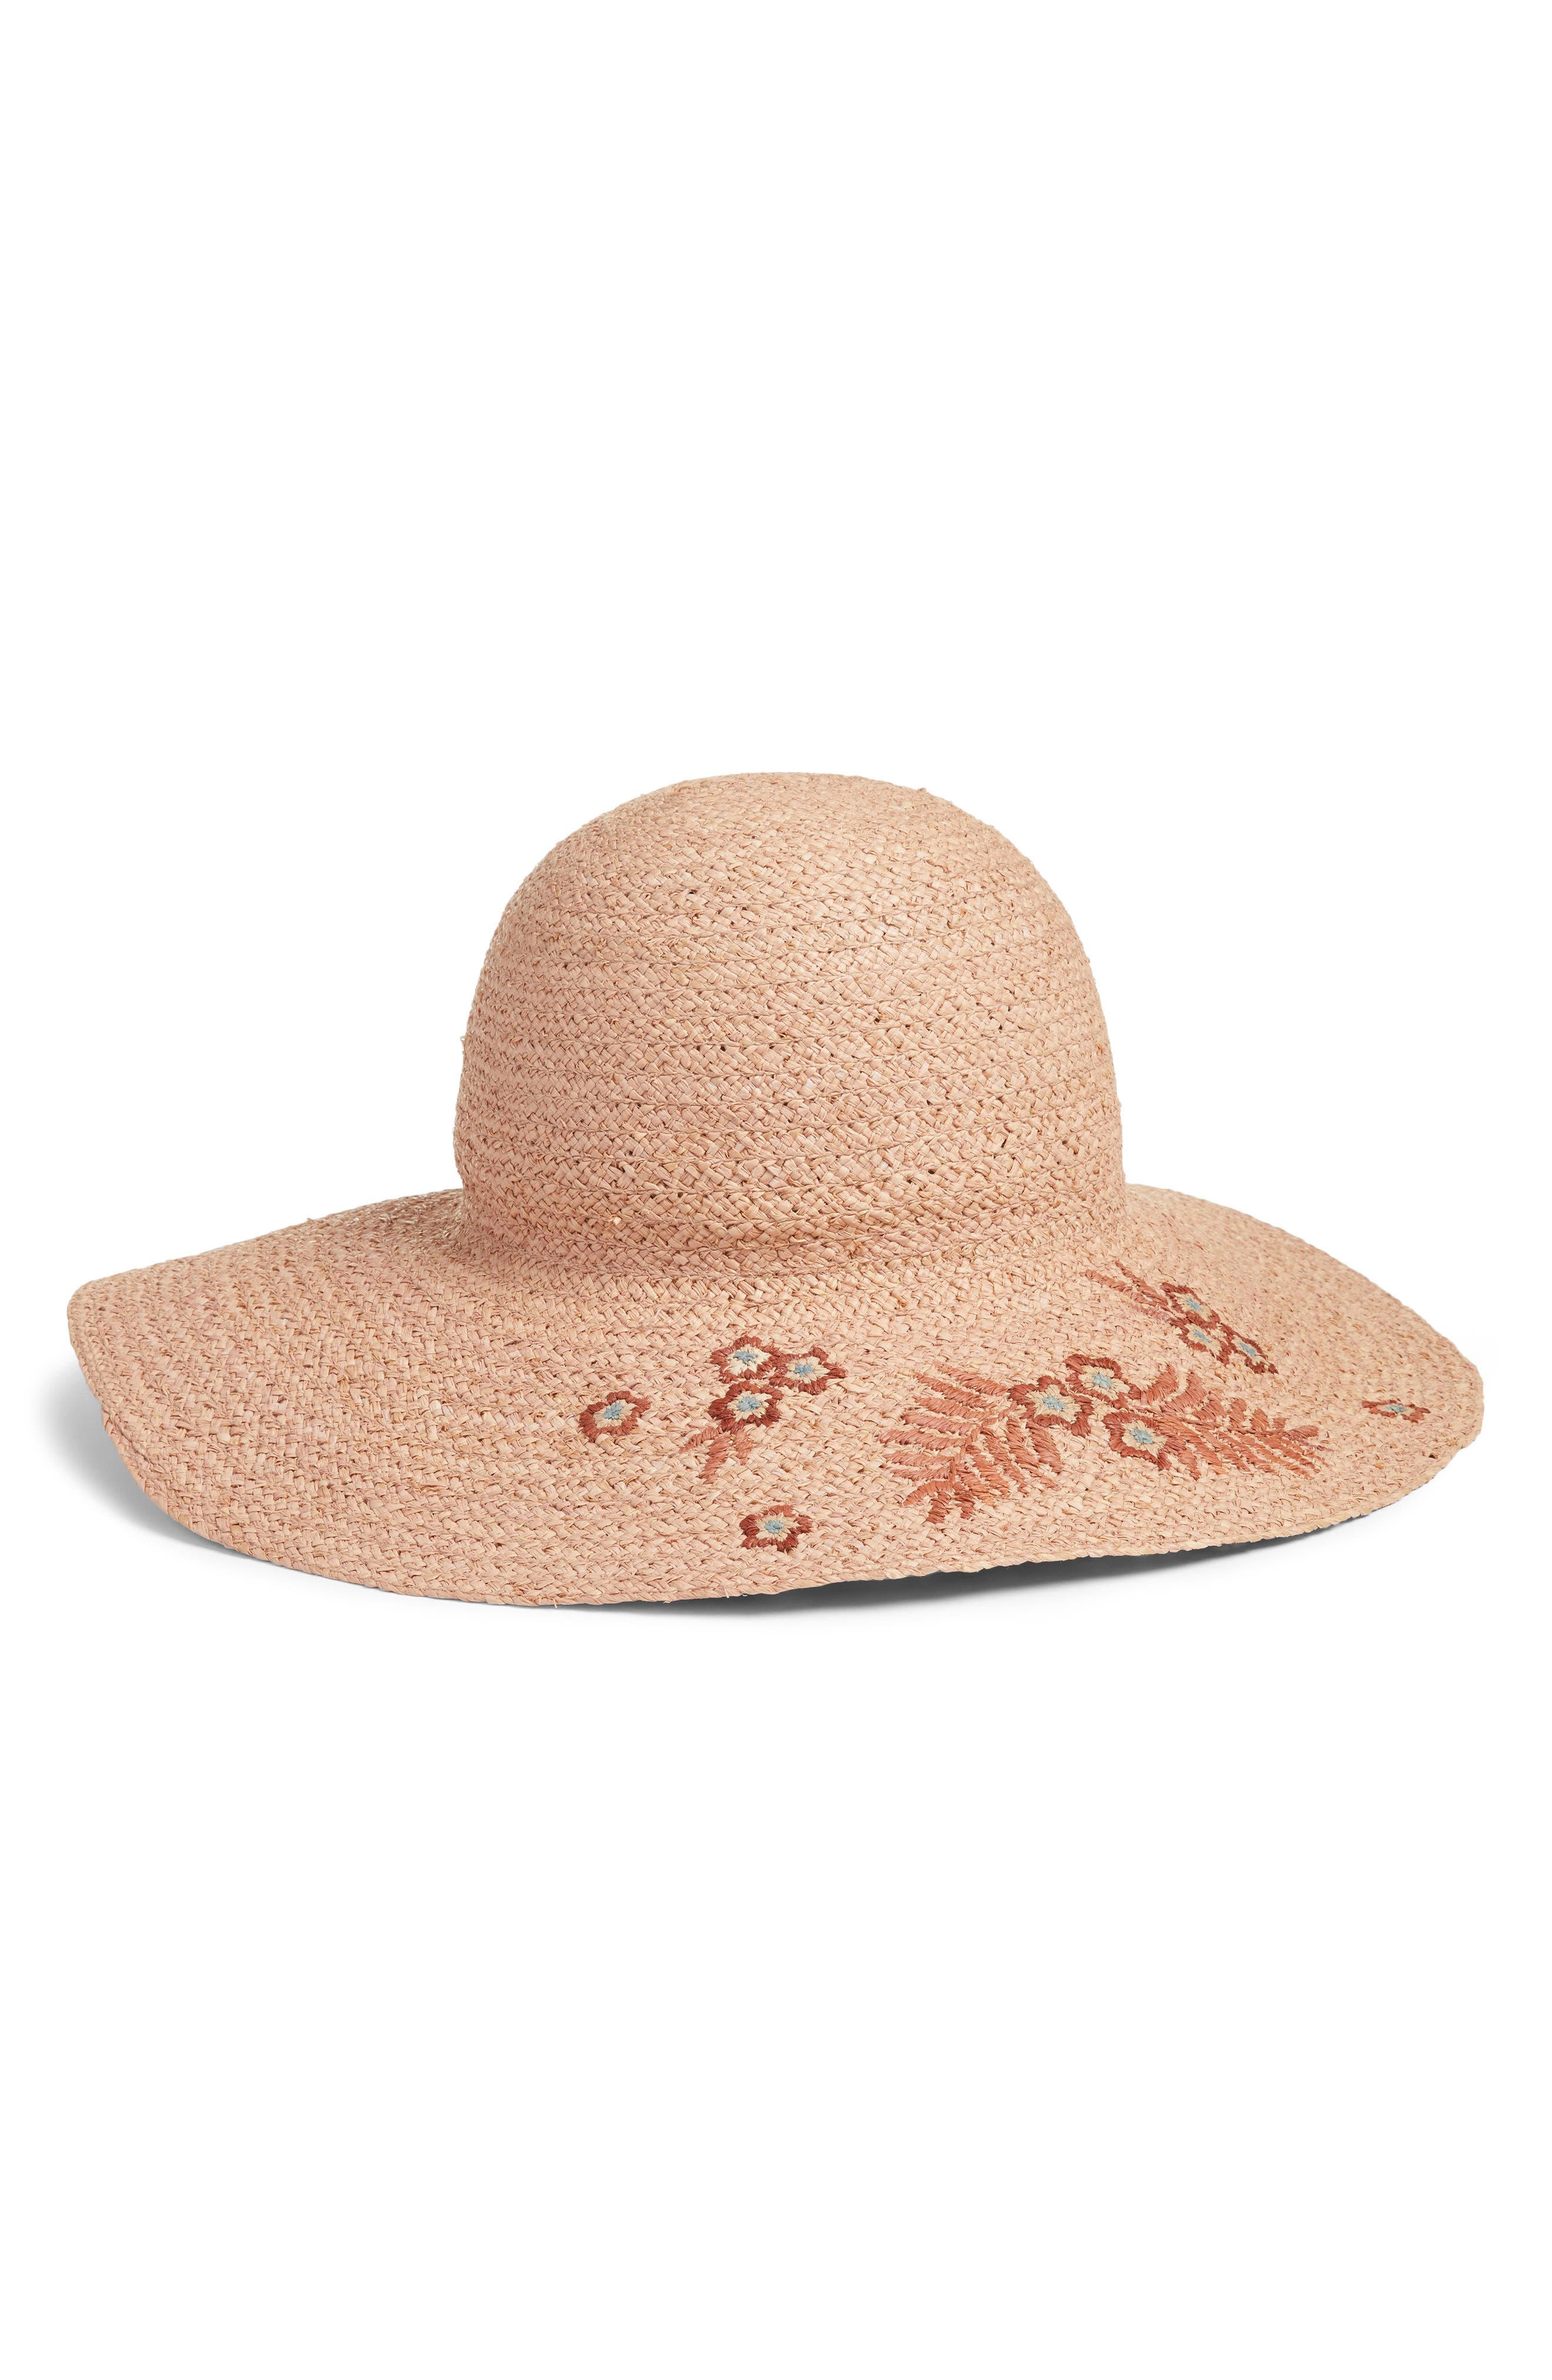 Flower Embroidered Raffia Hat,                         Main,                         color, Coral Sand